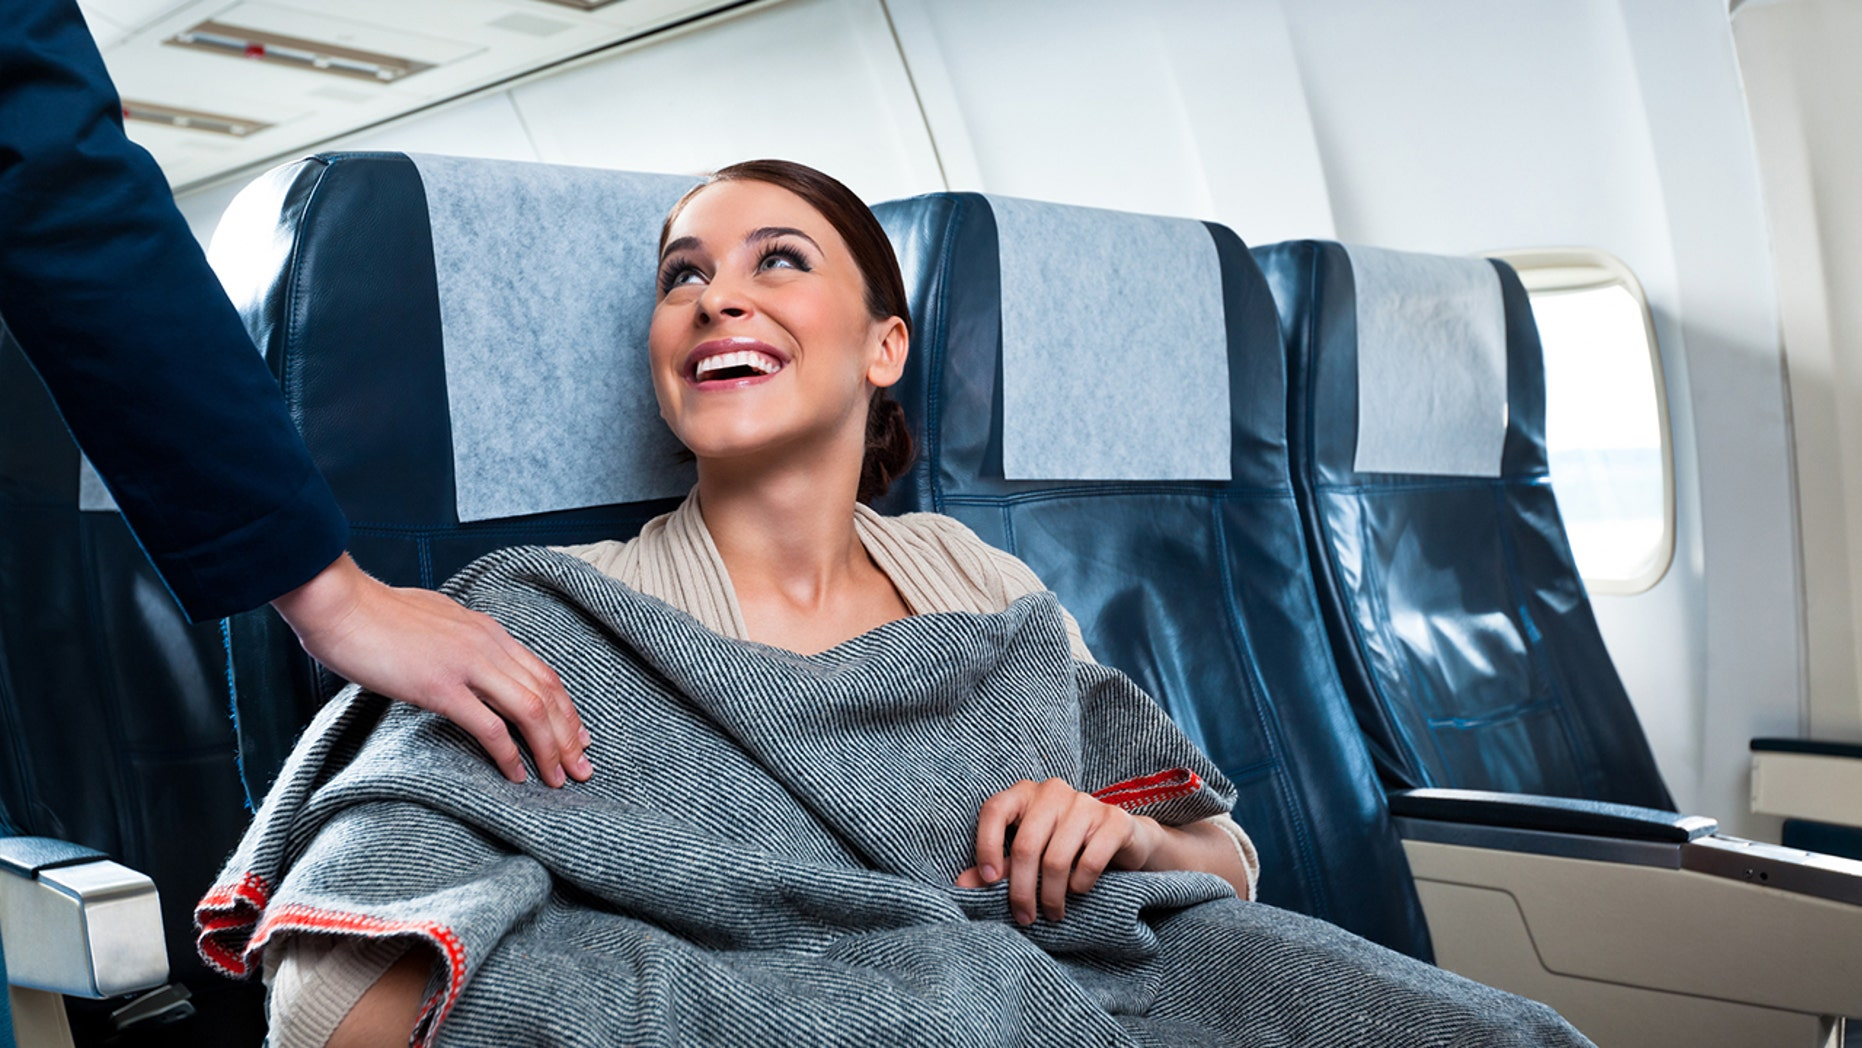 Passengers are apparently swiping high-end blankets and pillows from their planes after landing.